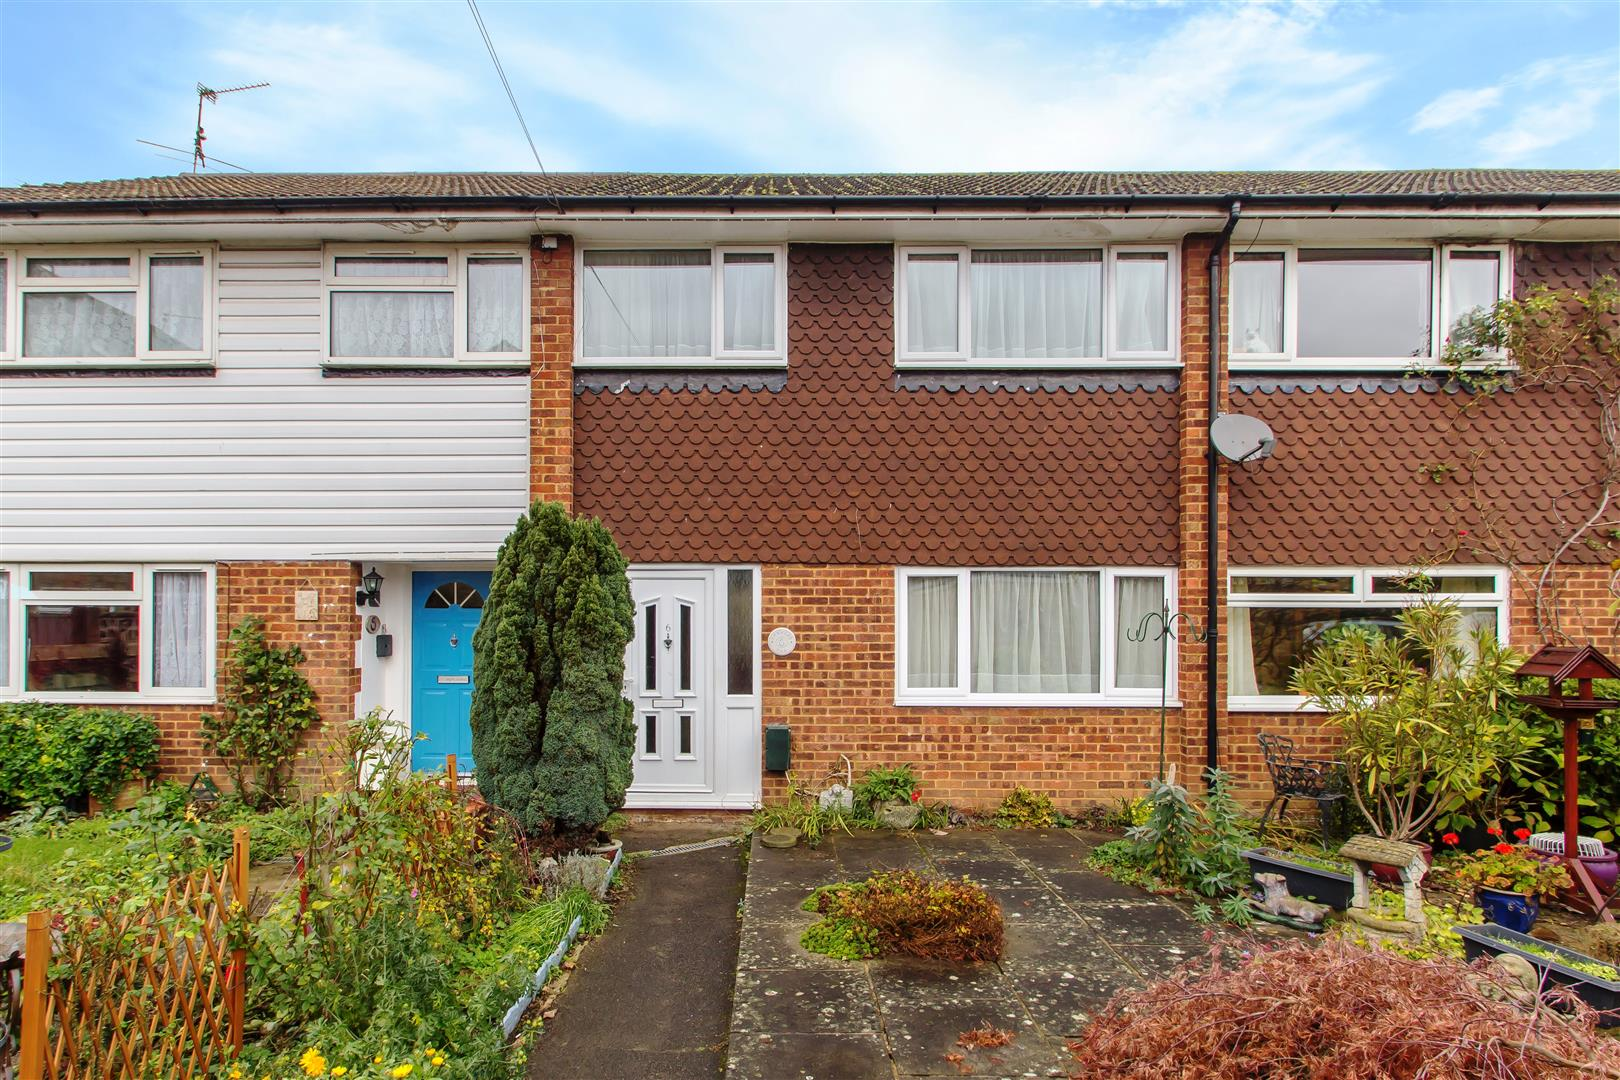 3 Bedrooms Terraced House for sale in Market Way, Westerham